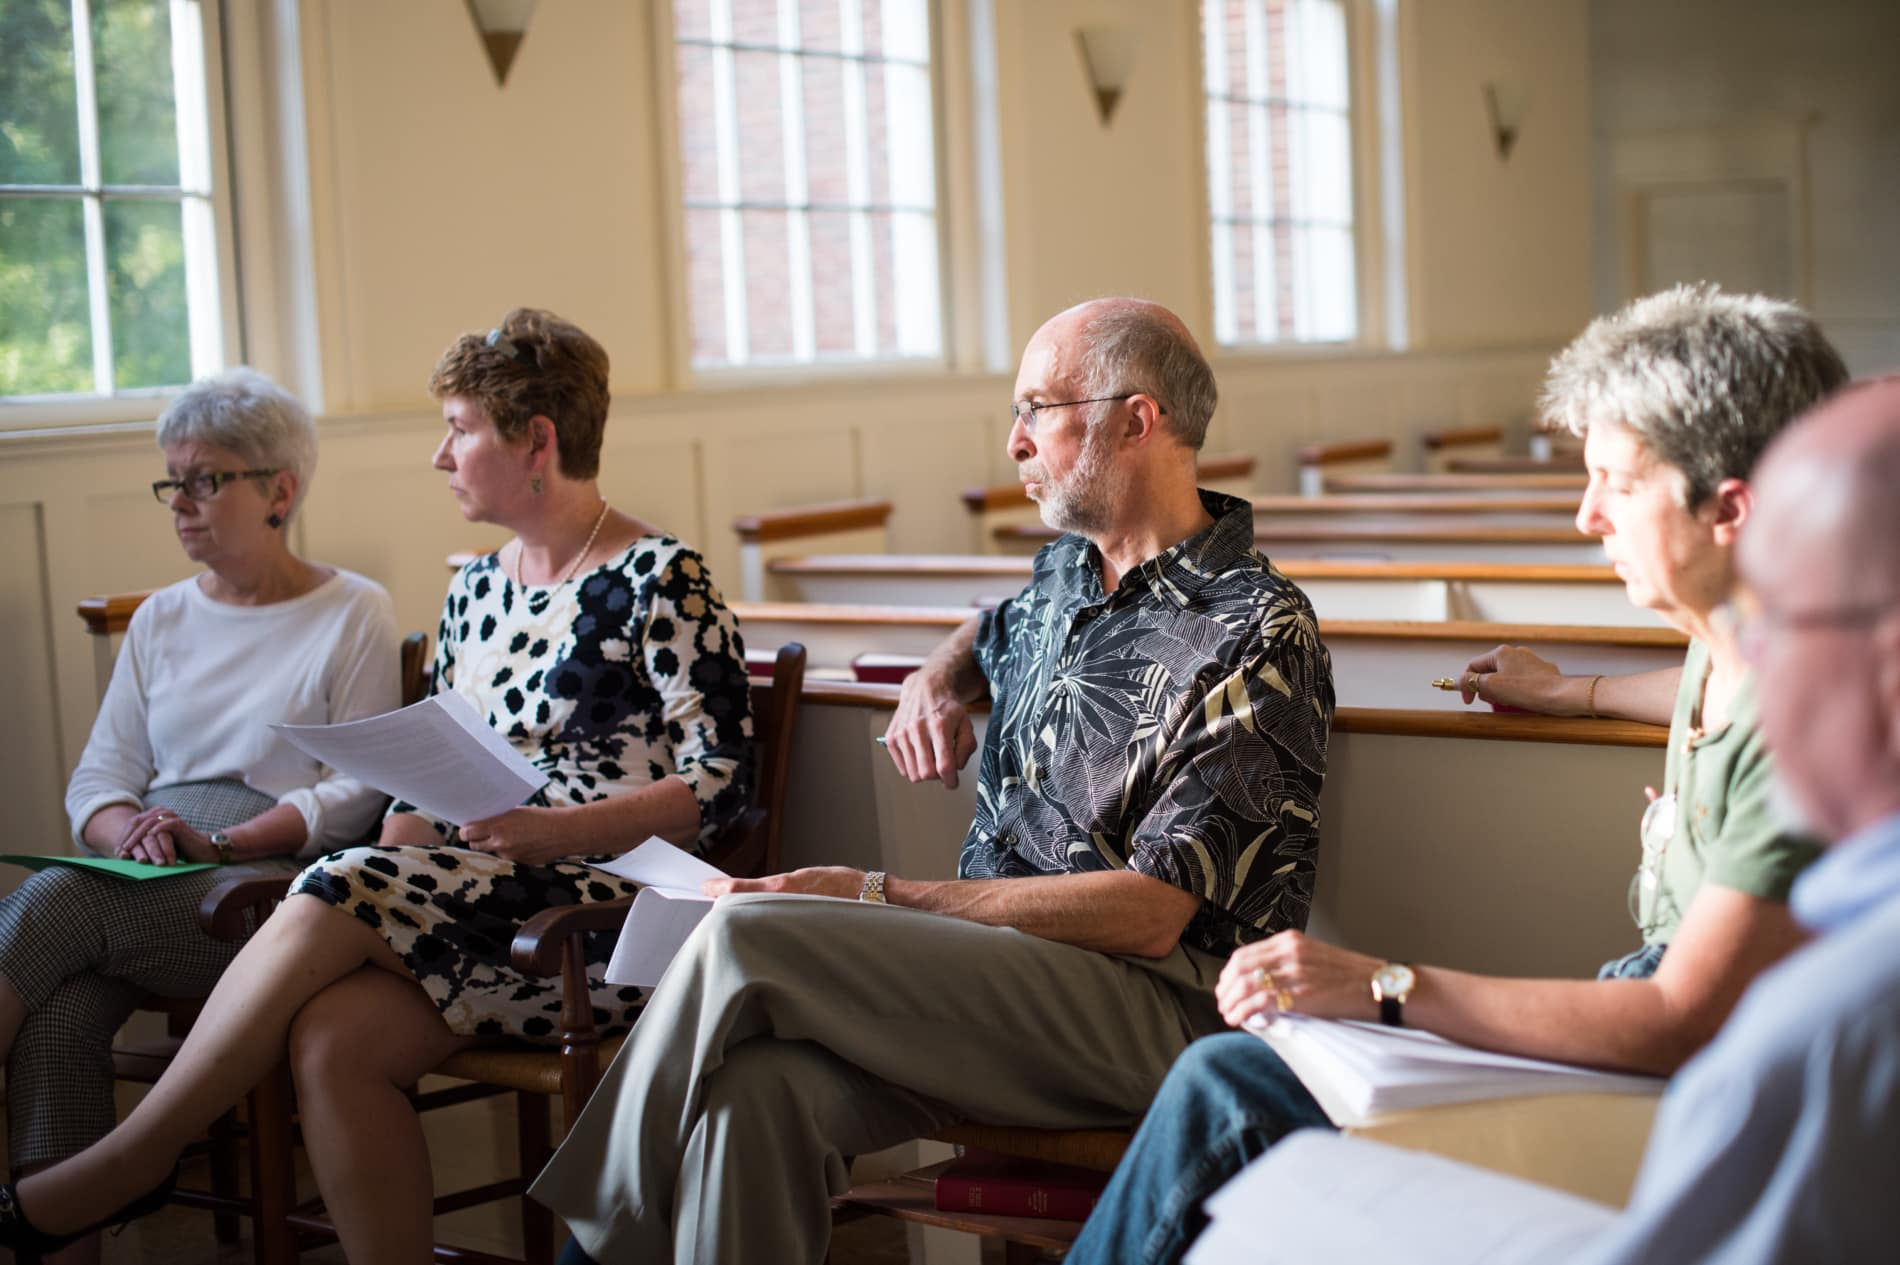 A group of adults engaged in conversation about Christianity